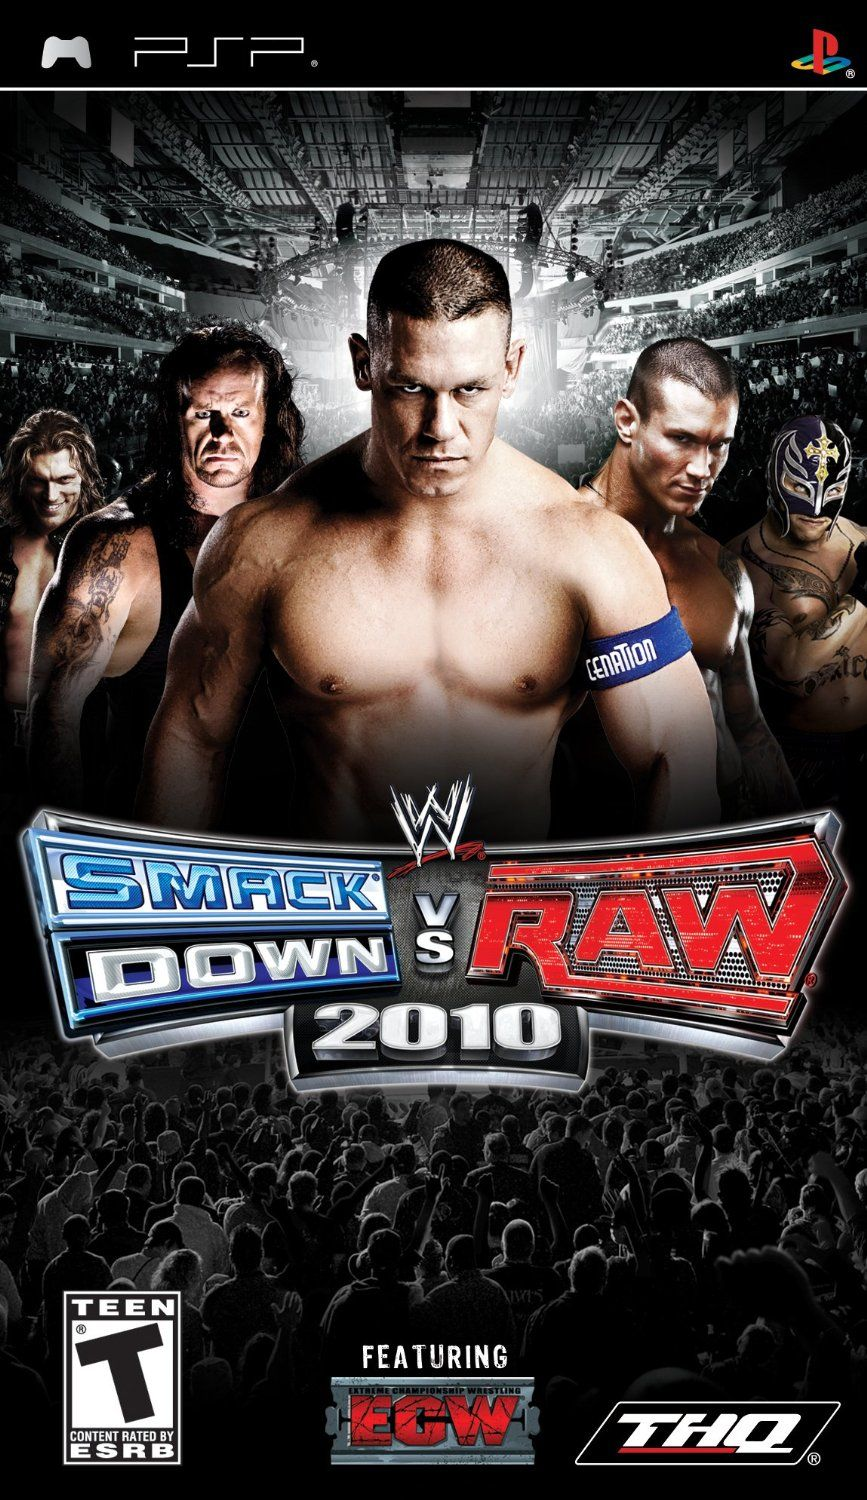 Buy WWE Smackdown Vs Raw 2010 (PSP) Online at Low Prices in